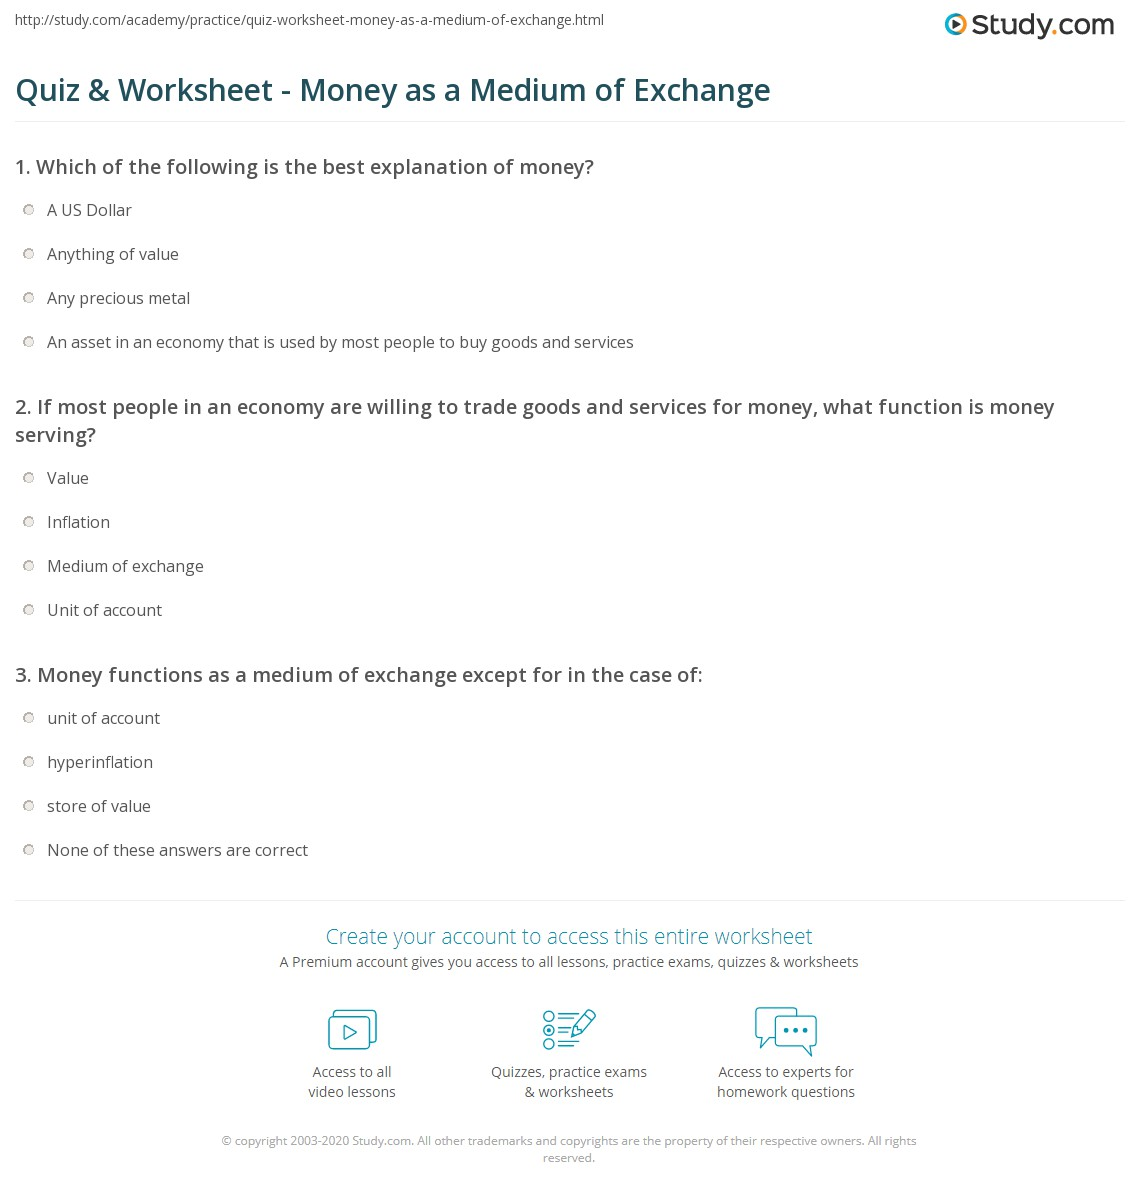 Worksheet Rule Of 72 Worksheet Grass Fedjp Worksheet Study Site